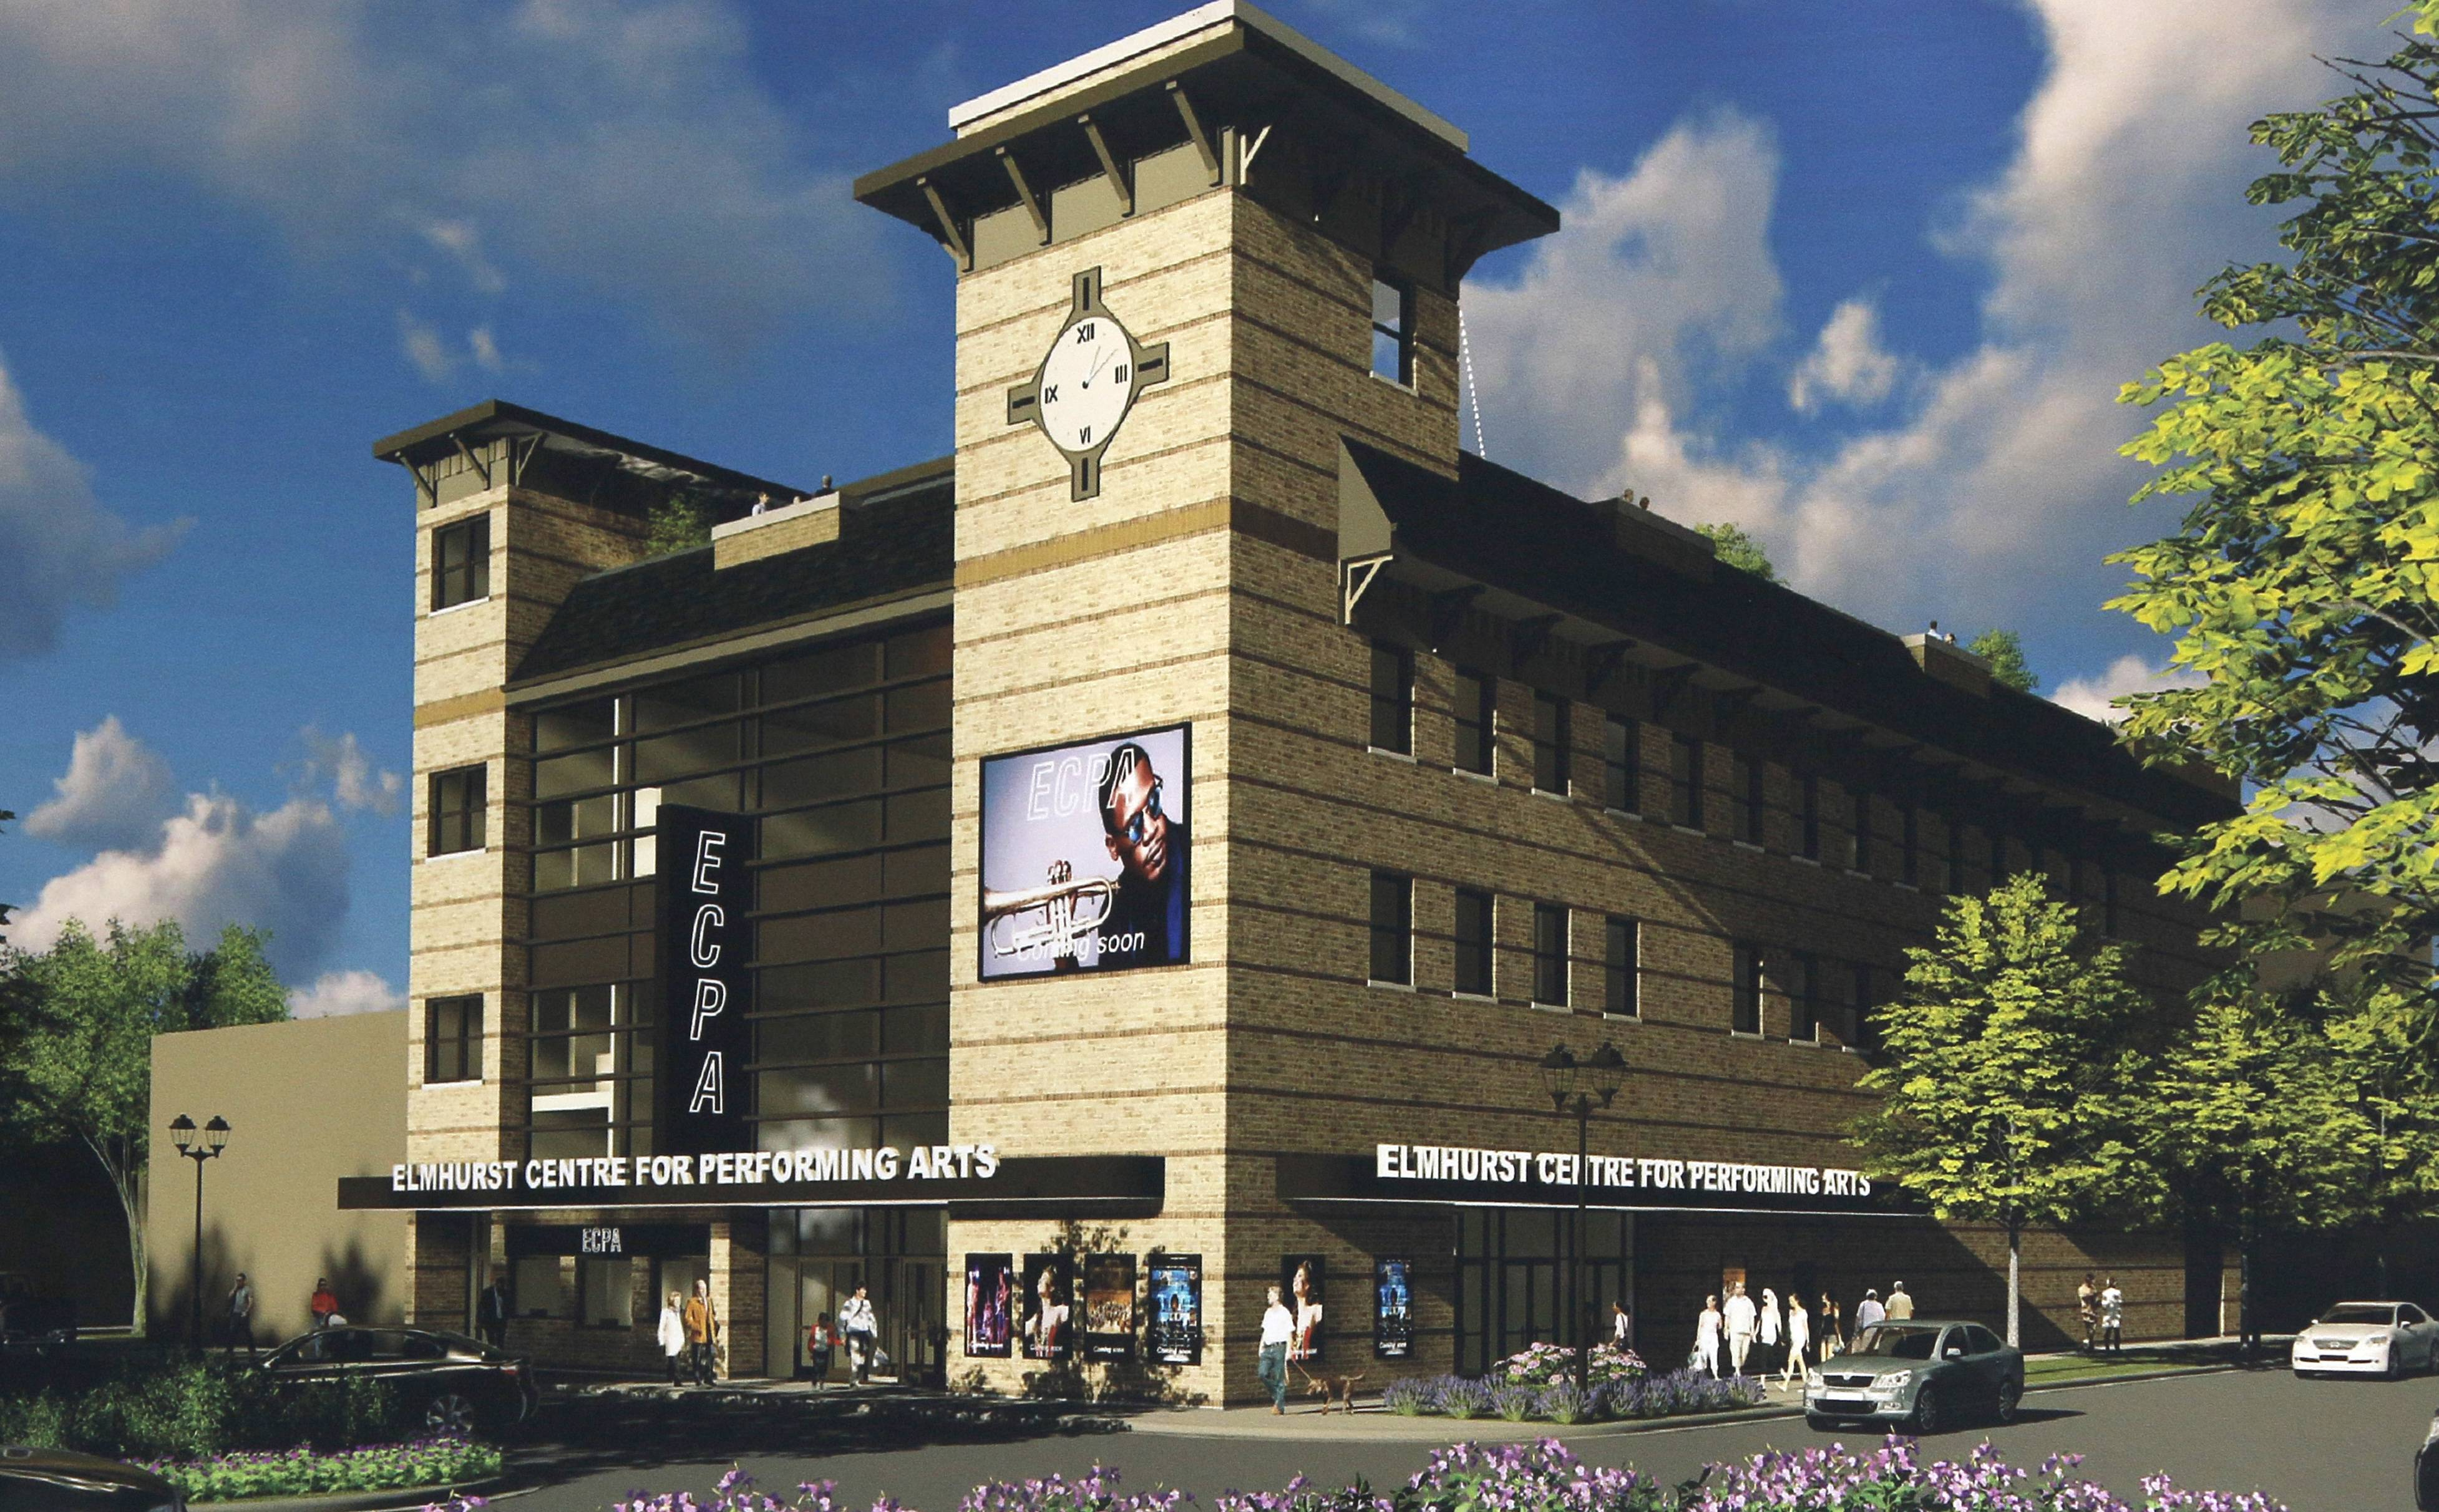 Members of the Elmhurst Centre for Performing Arts have signed a contract to buy a downtown site for a new theater complex that could cost $25 million. Architect Jeff Budgell produced the above rendering.